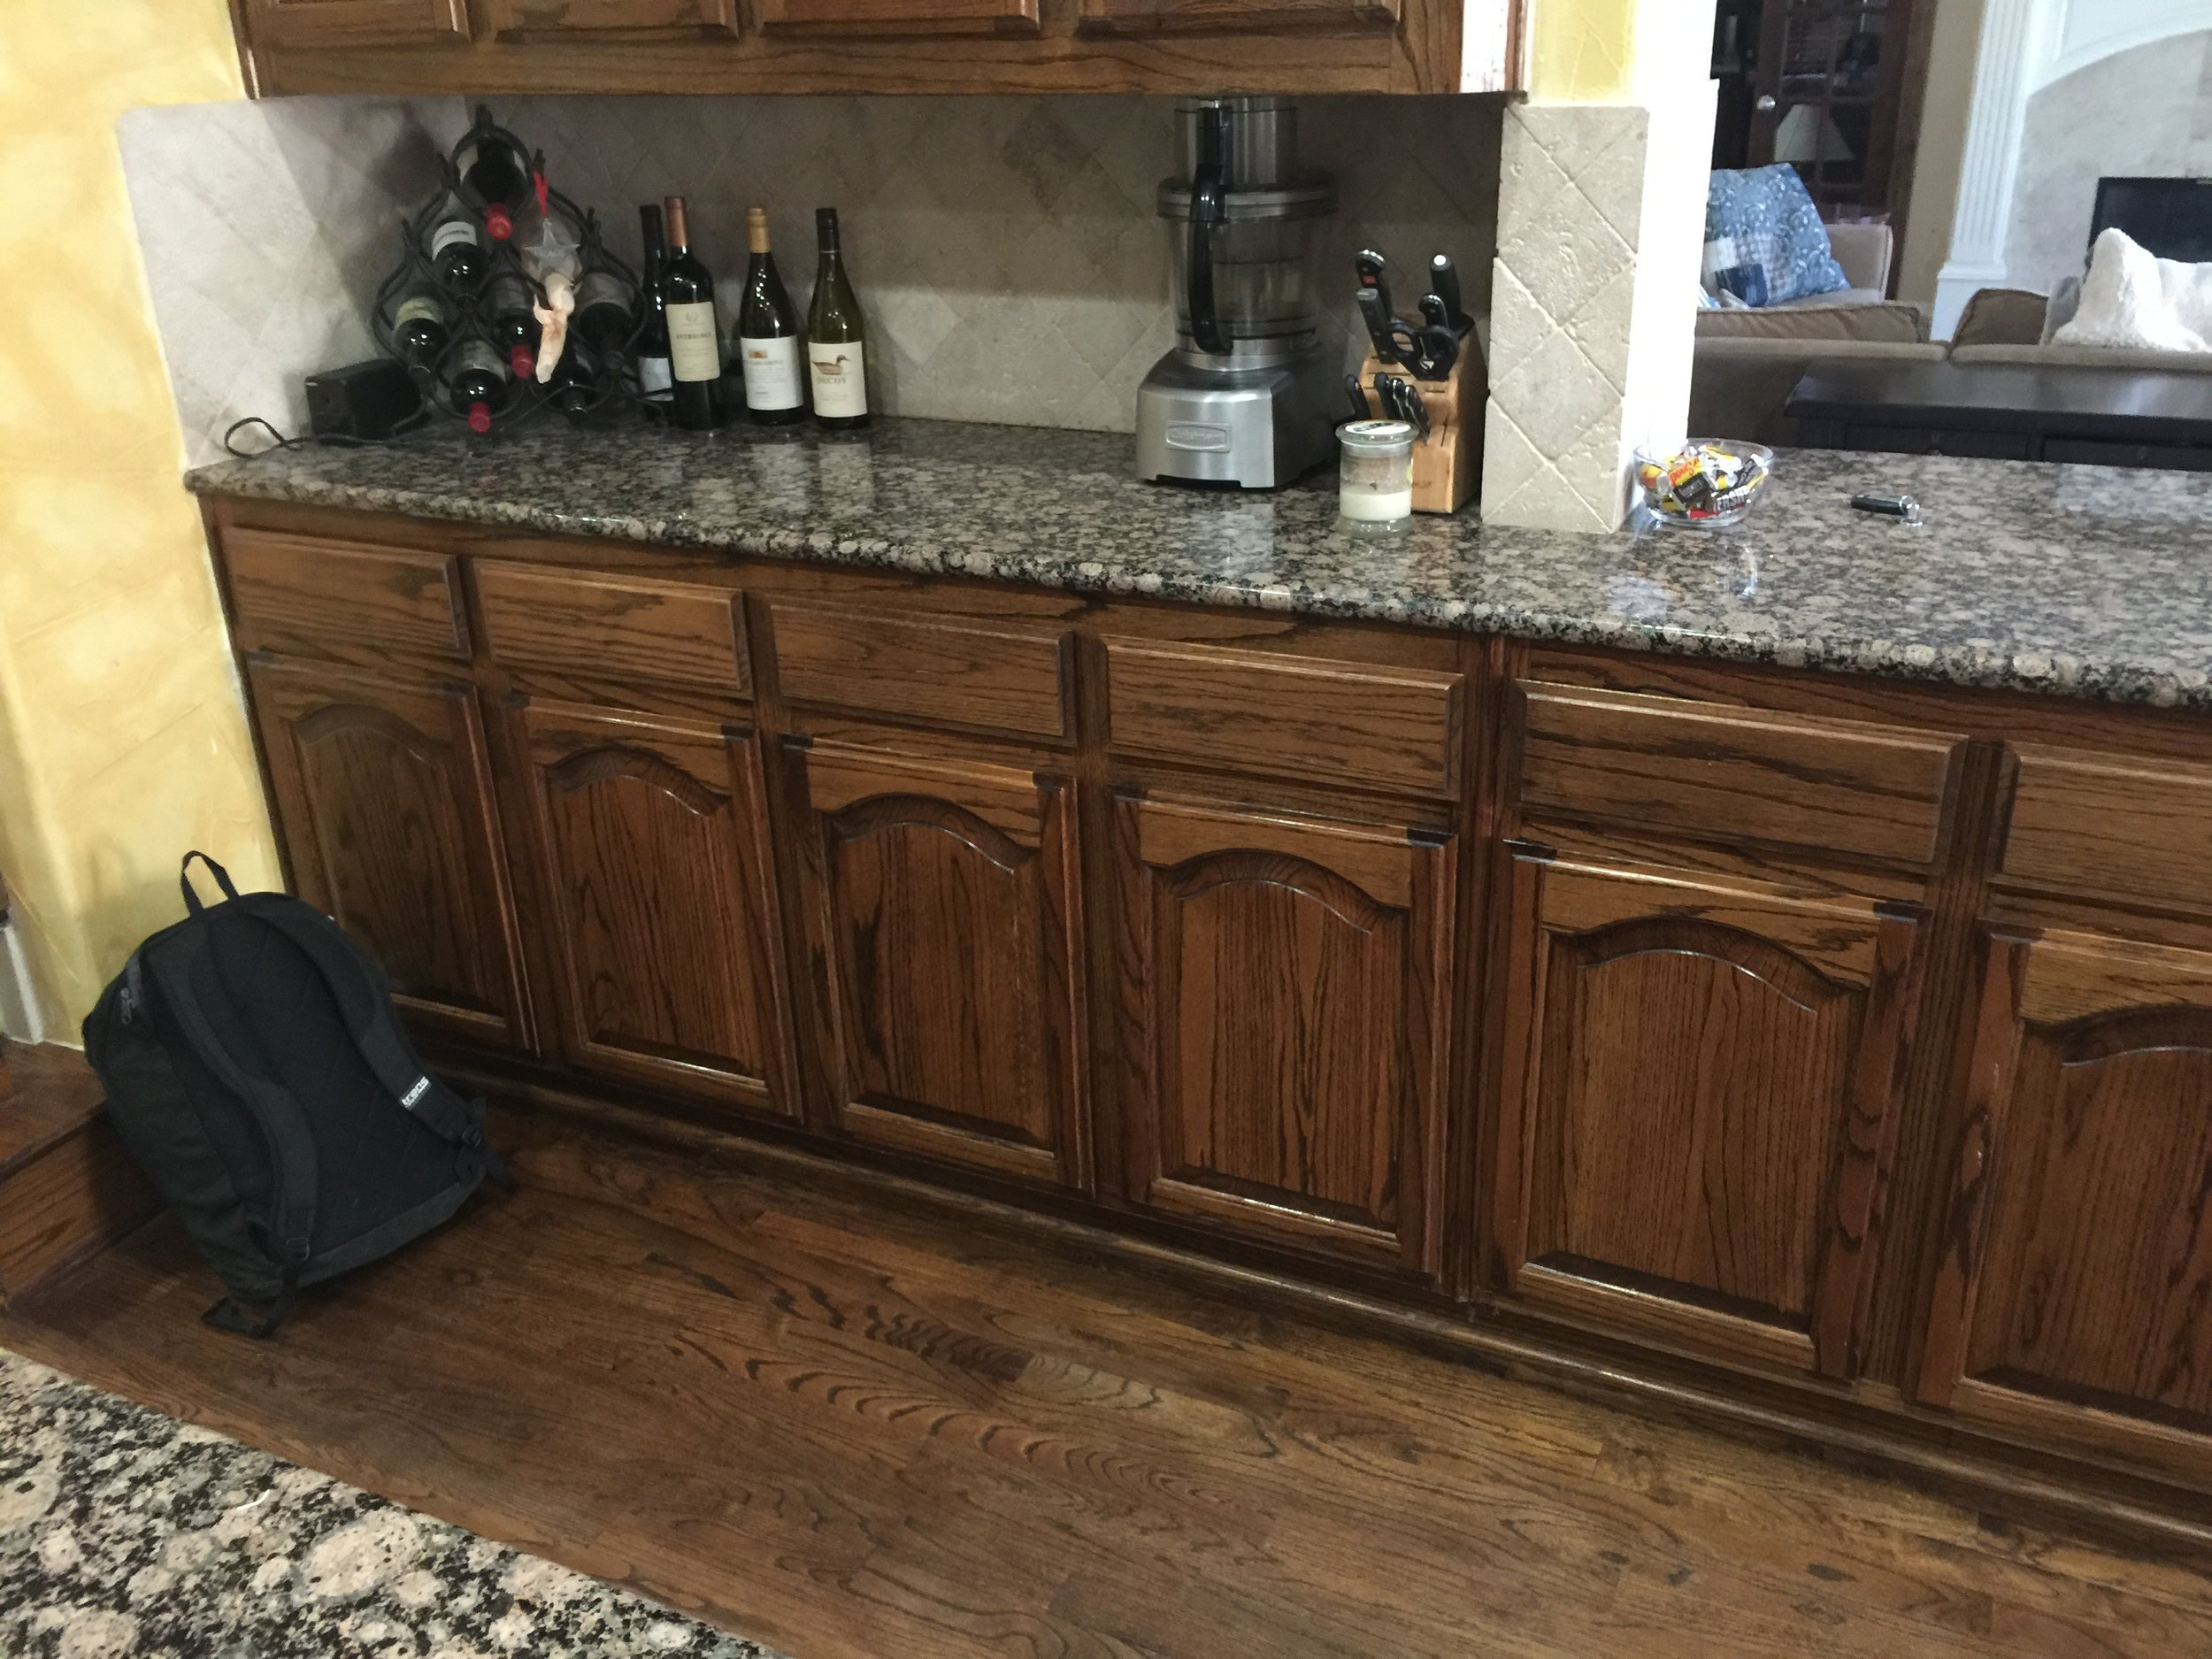 Kitchen Remodel Southlake TX - Before and After